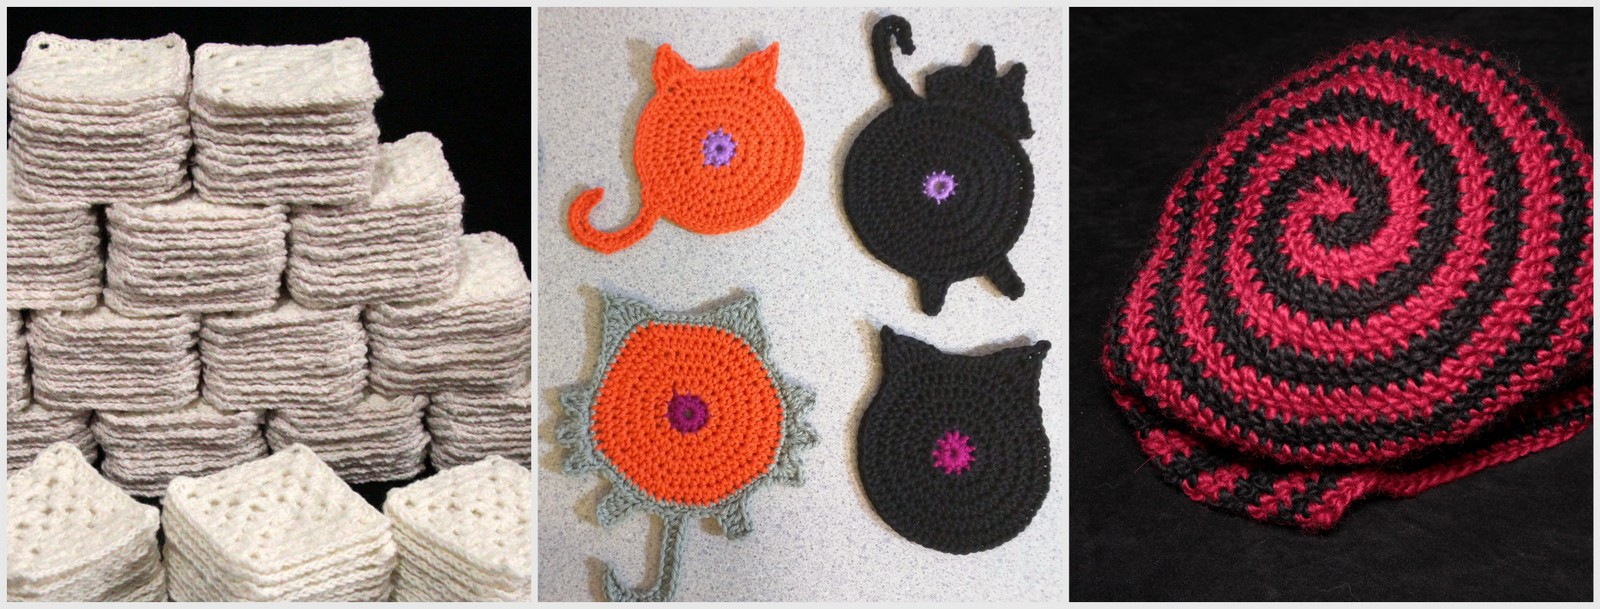 Click through for Crochet Projects